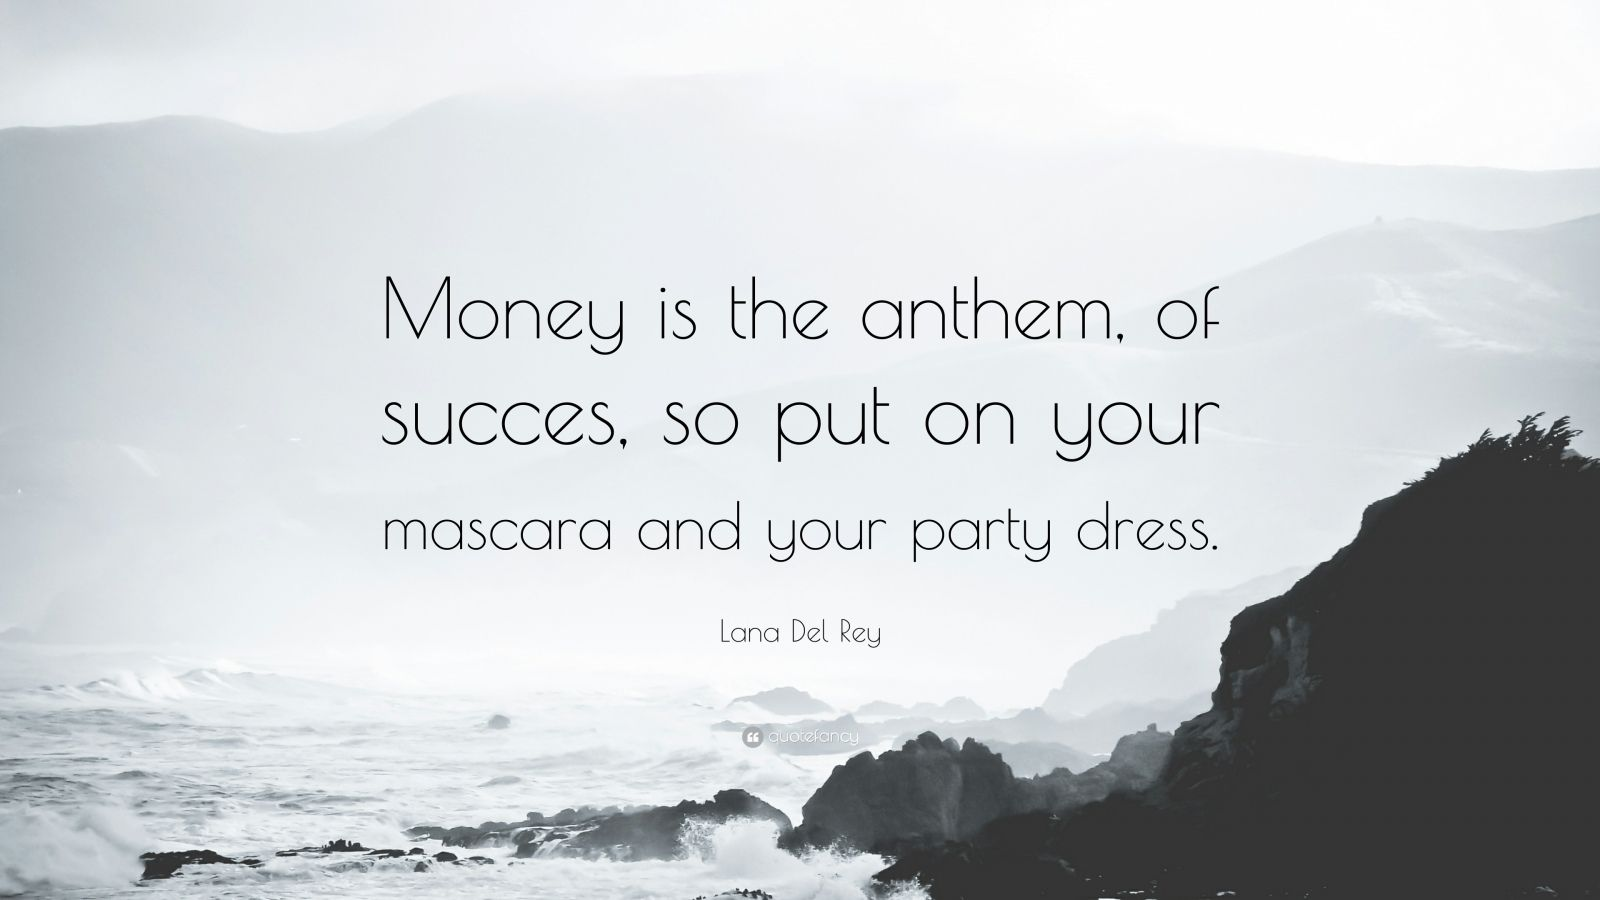 """Lana Del Rey Quote: """"Money is the anthem, of succes, so put on your mascara and your party dress."""""""